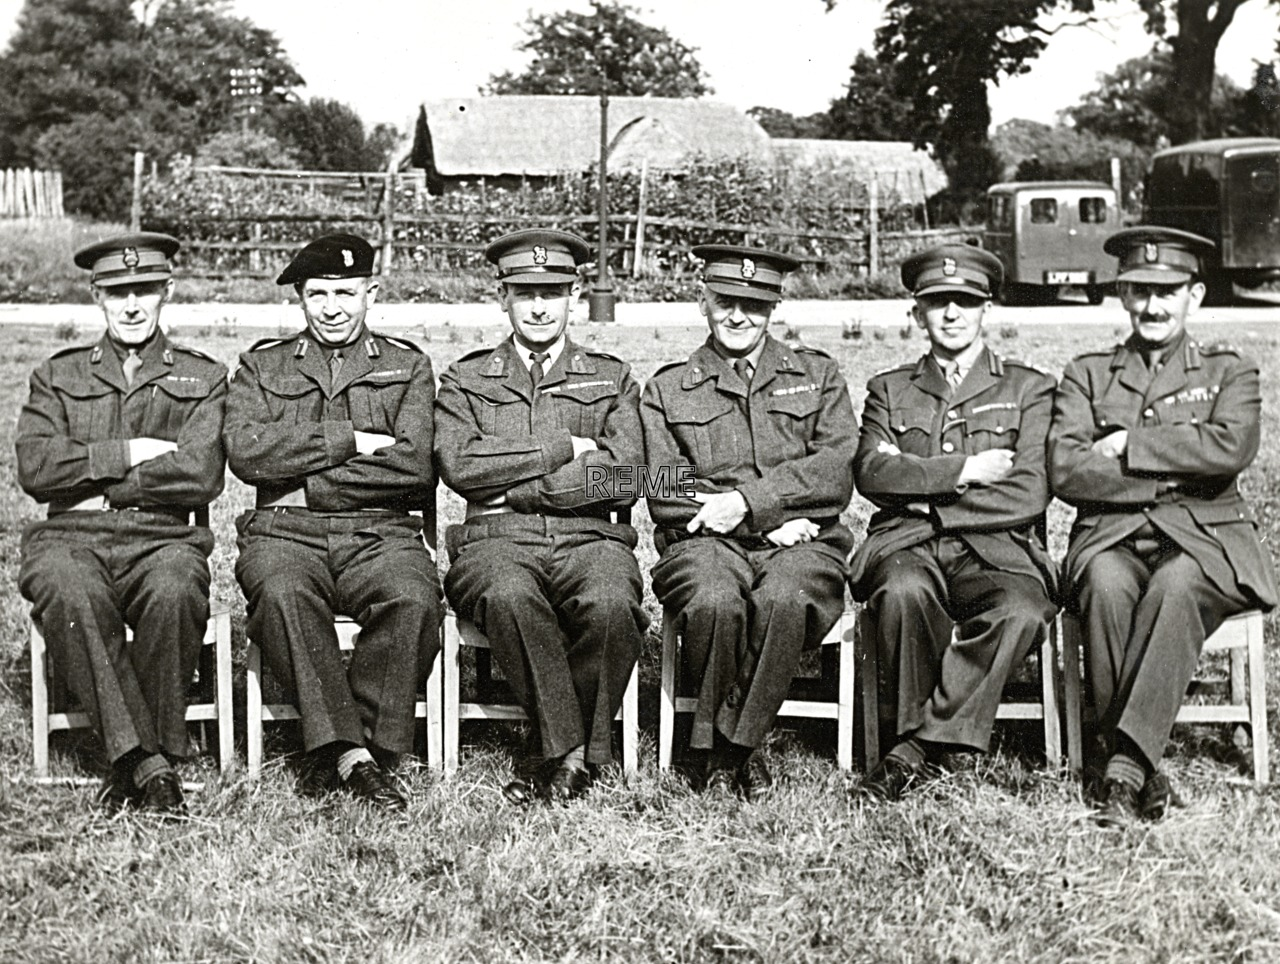 2nd Ordnance Mechanical Engineer (OME) course reunion, 1 September 1949